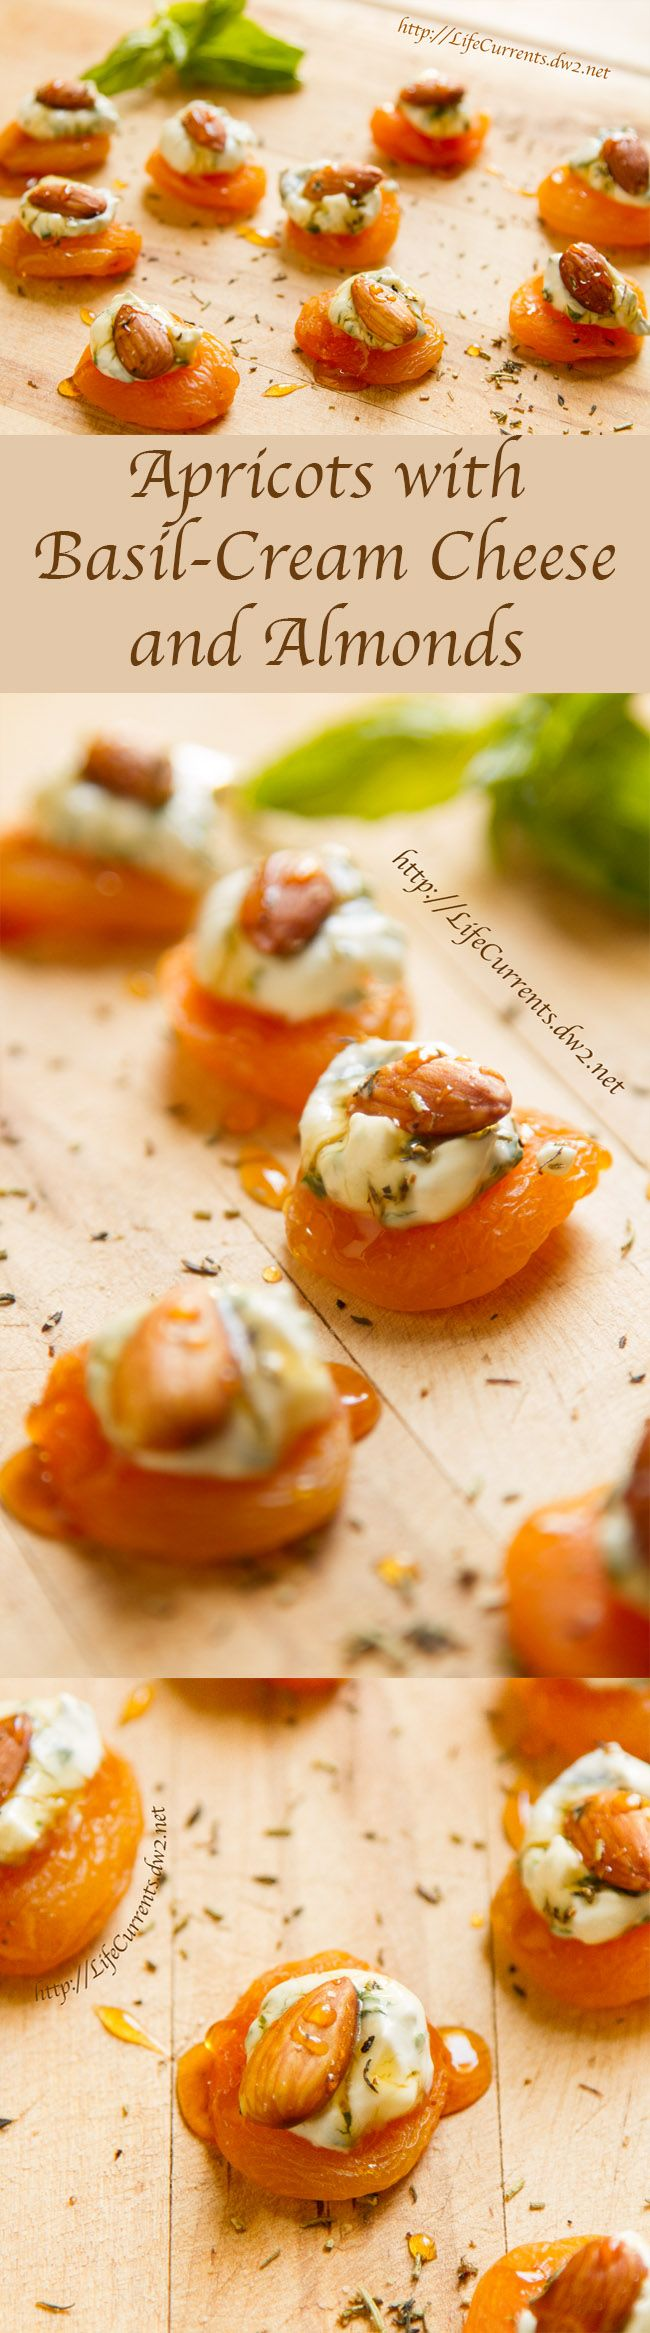 Apricots with Basil-Cream Cheese and Almonds: an awesome appetizer with a little sweetness that's welcome at any party or gathering!